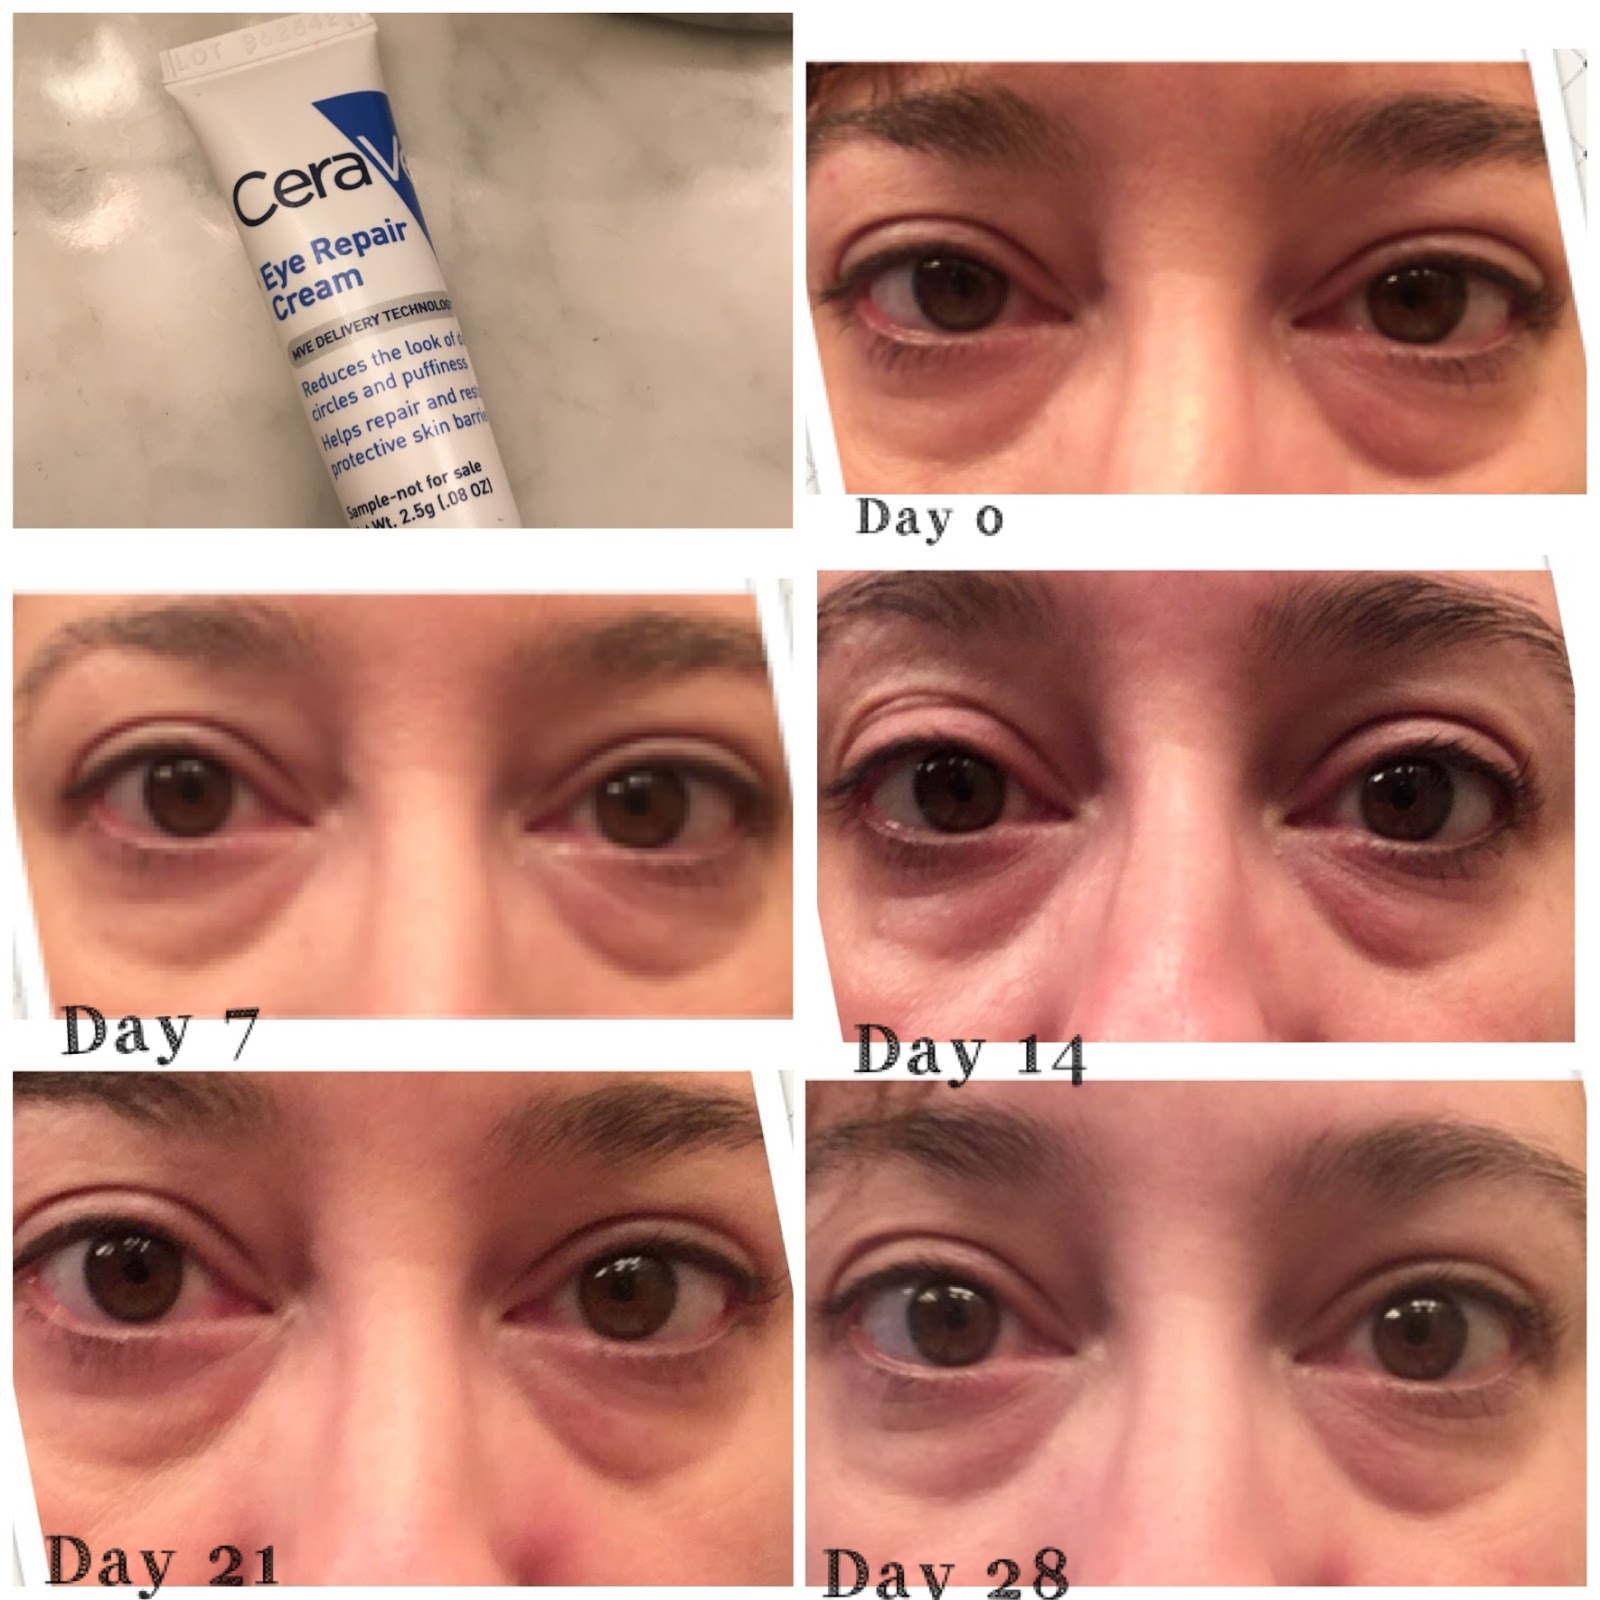 Exploring Makeup In My 40 S Review Of Cerave Eye Repair Cream After 1 Month Of Testing